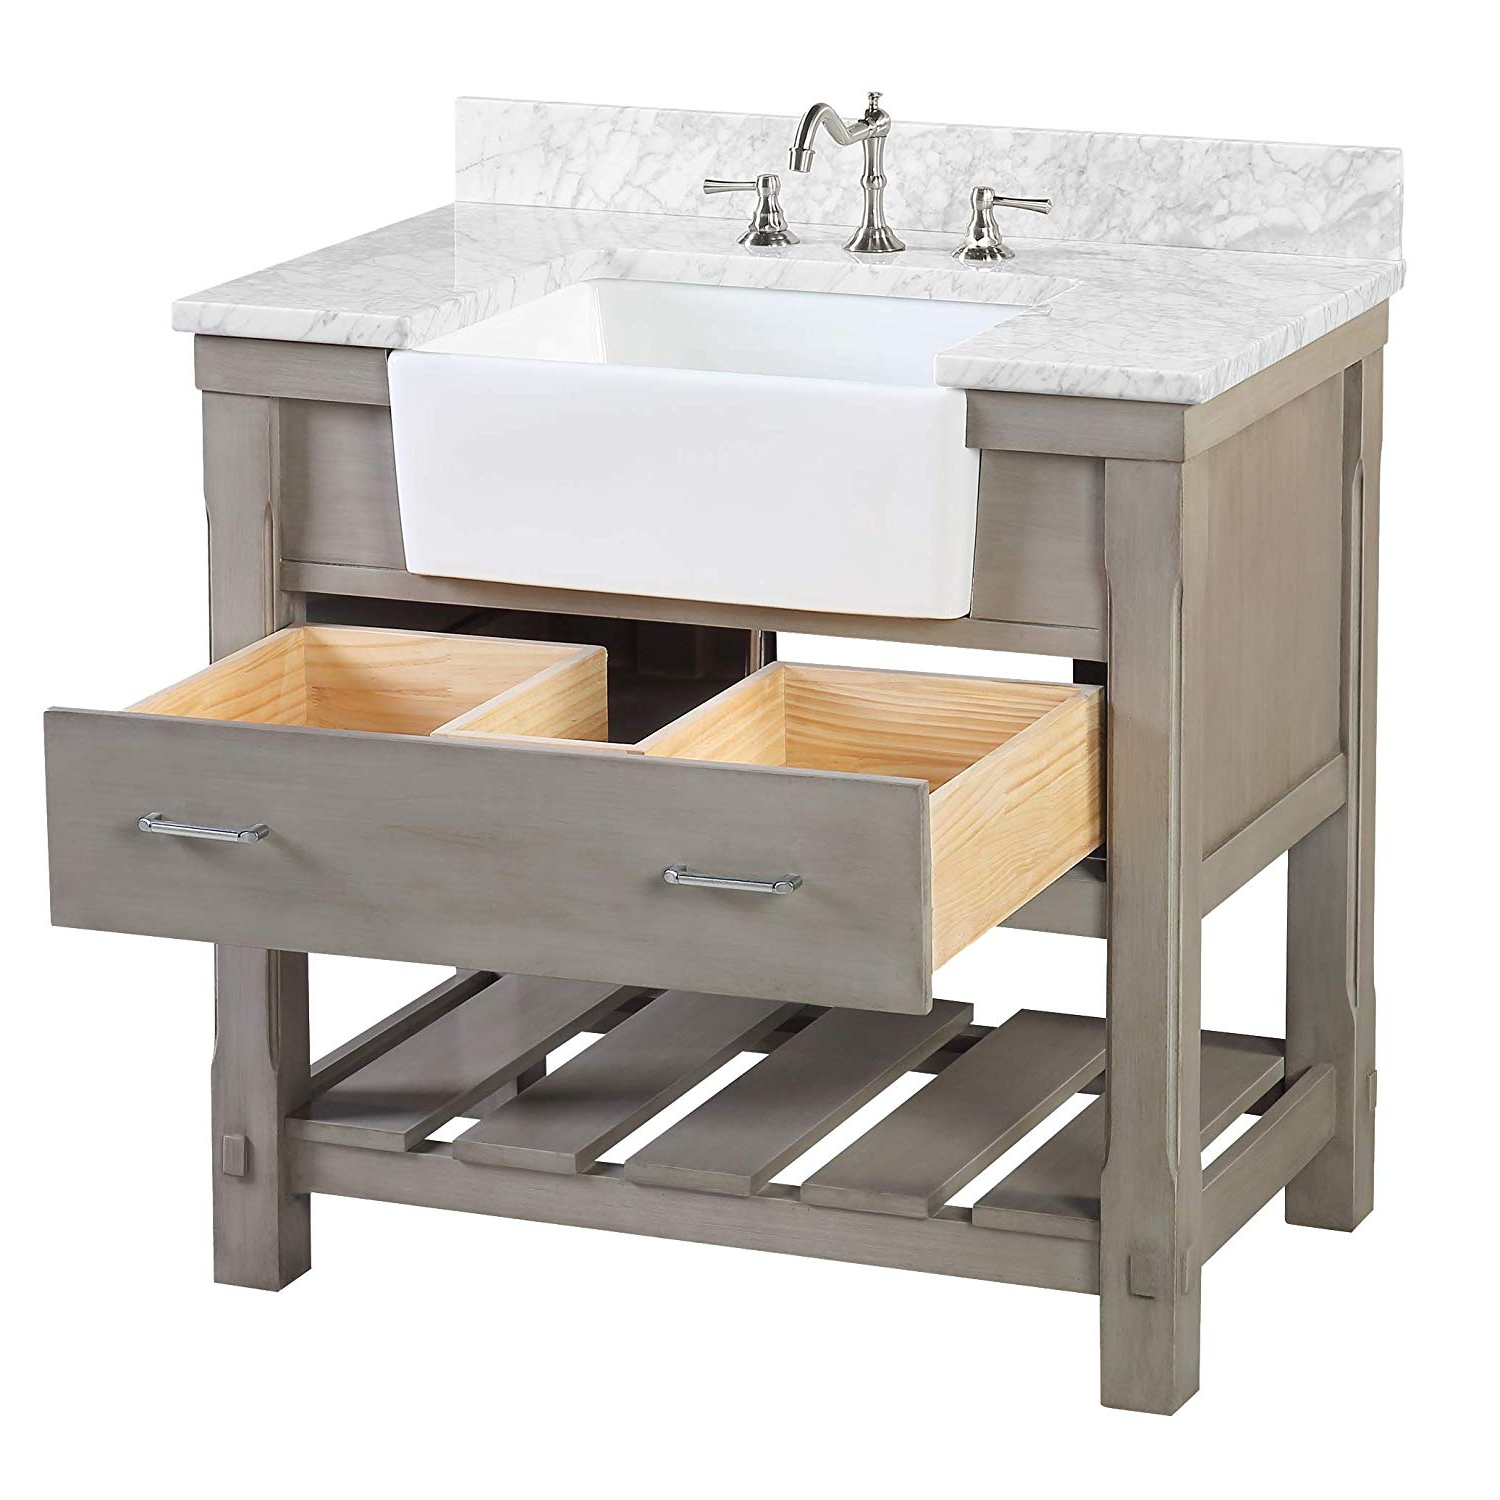 Thick White Marble Slab Dining Tables With Weathered Grey Finish Inside Newest Charlotte 36 Inch Bathroom Vanity (Carrara/weathered Gray): Includes A  Carrara Marble Countertop, Royal Blue Cabinet With Soft Close Drawers, And (View 11 of 25)